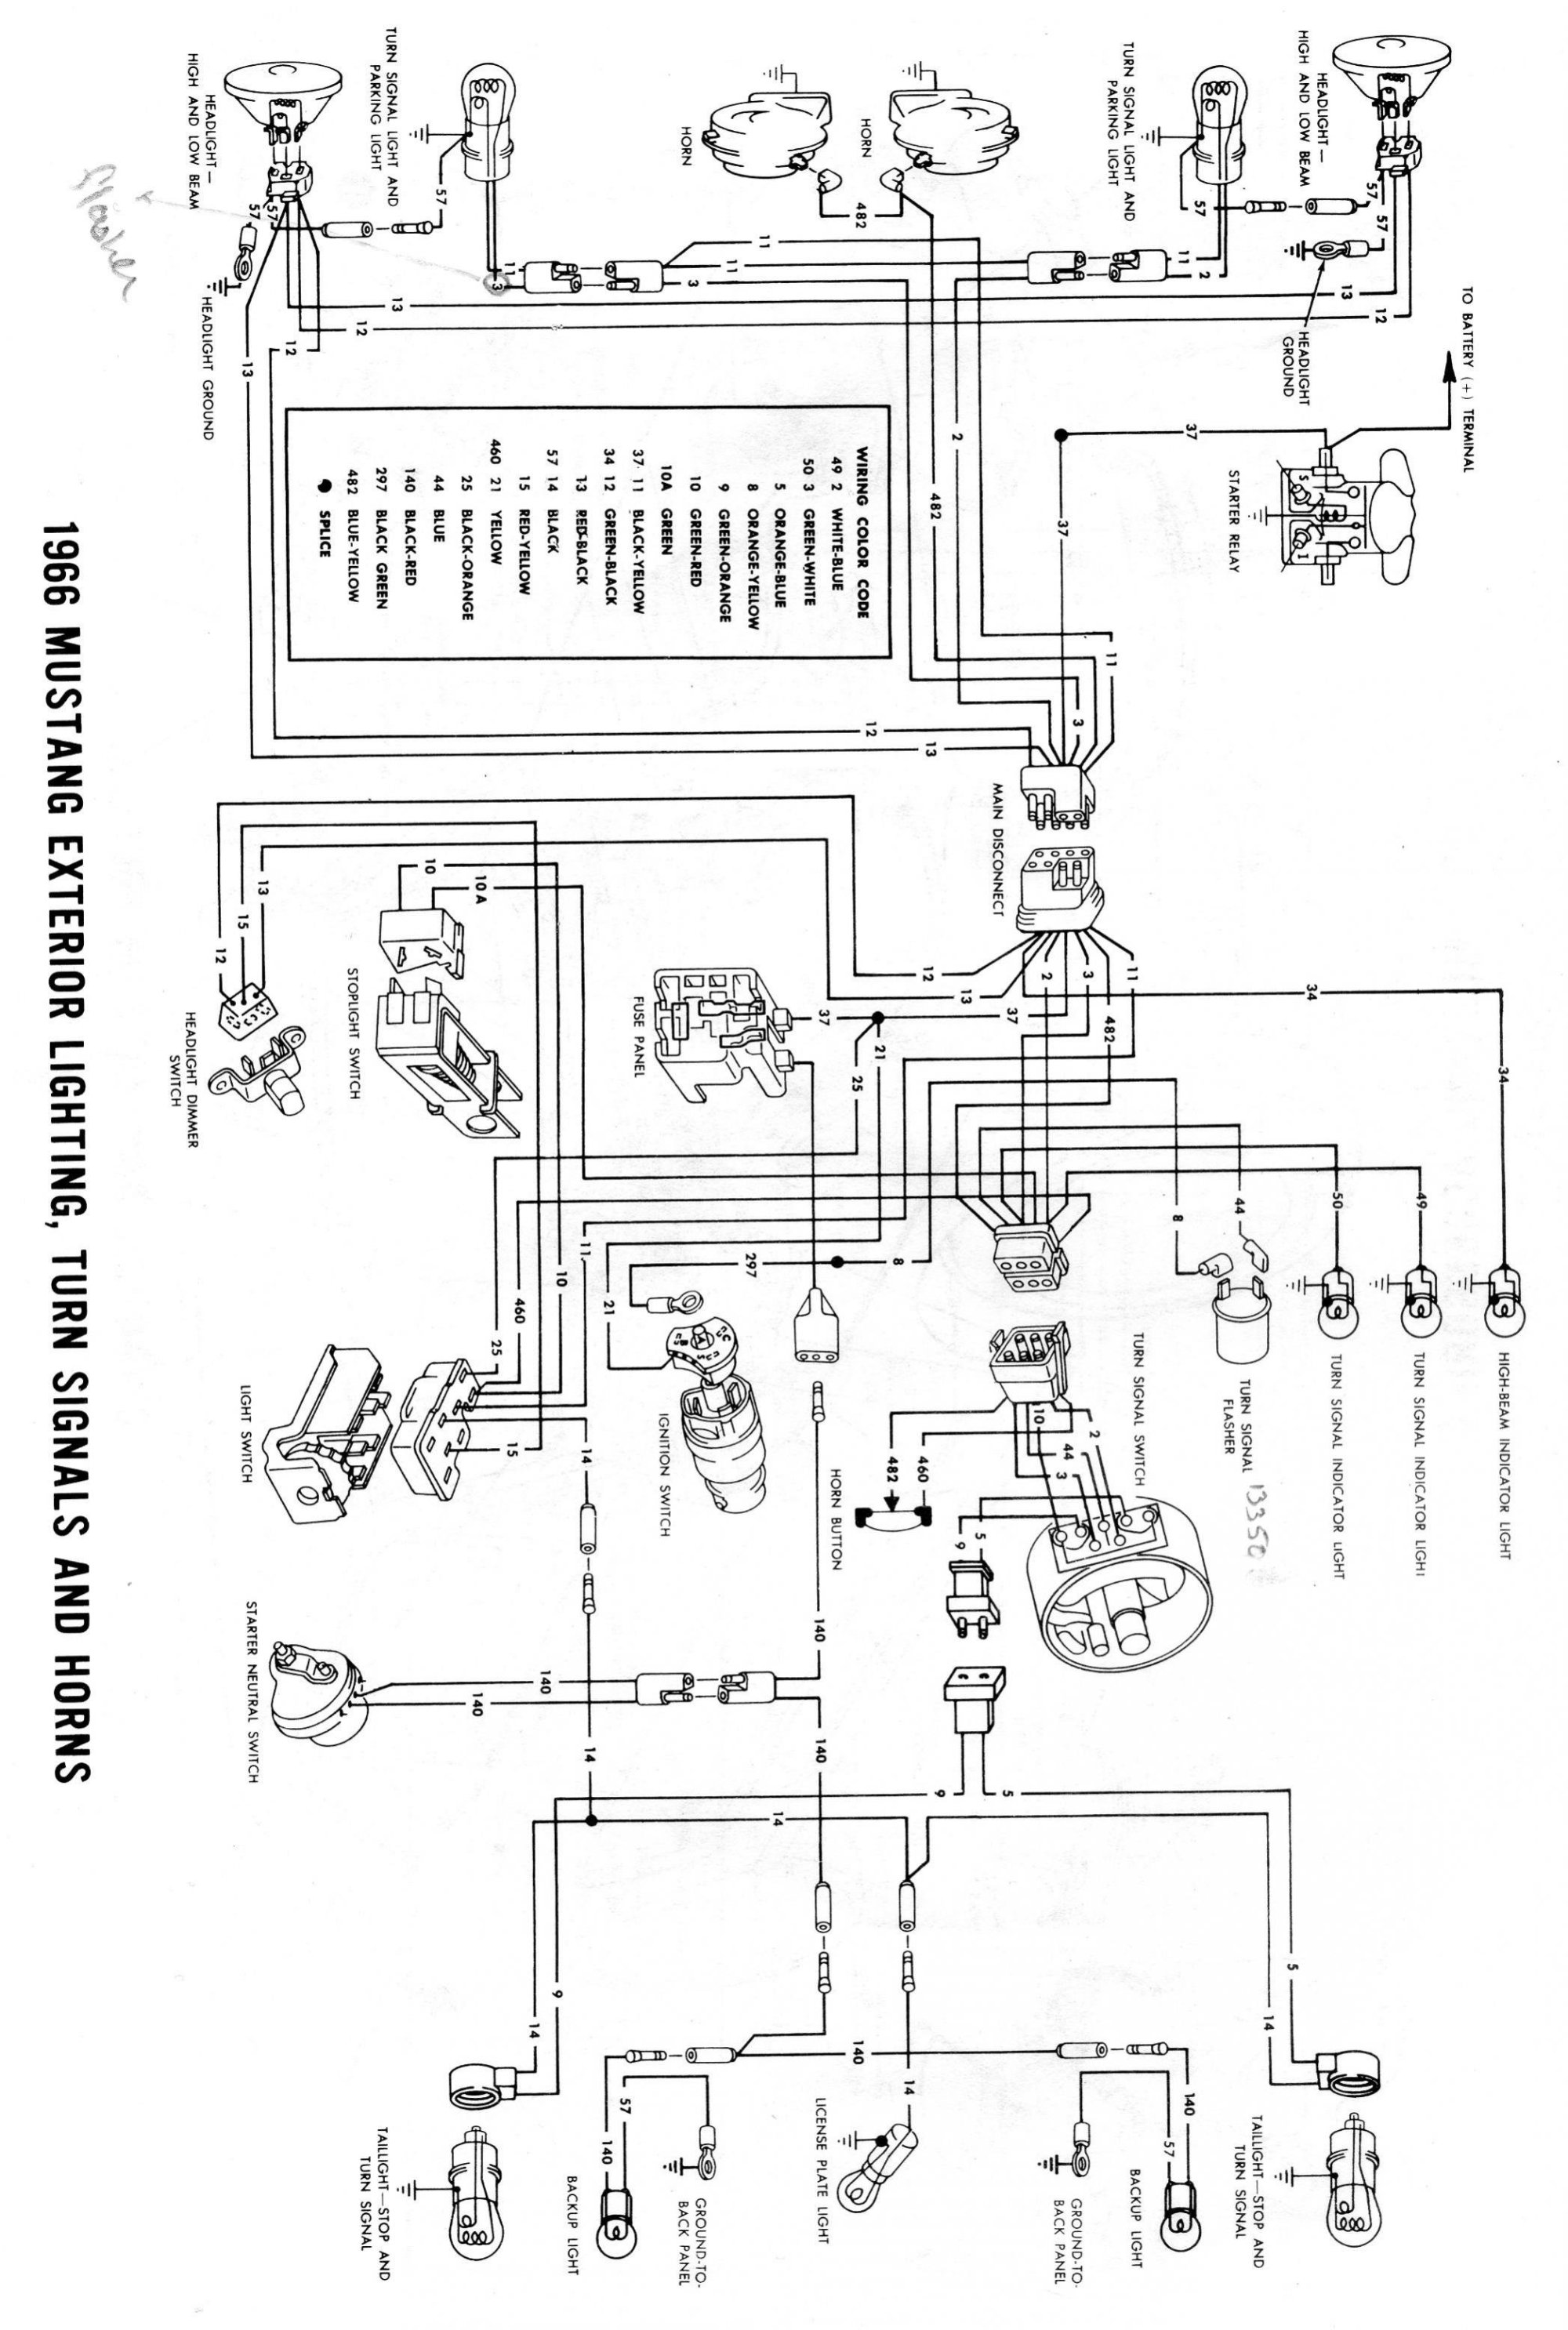 hight resolution of 65 mustang dash wiring diagram free download wiring diagram toolbox 1966 mustang dash wiring diagram free